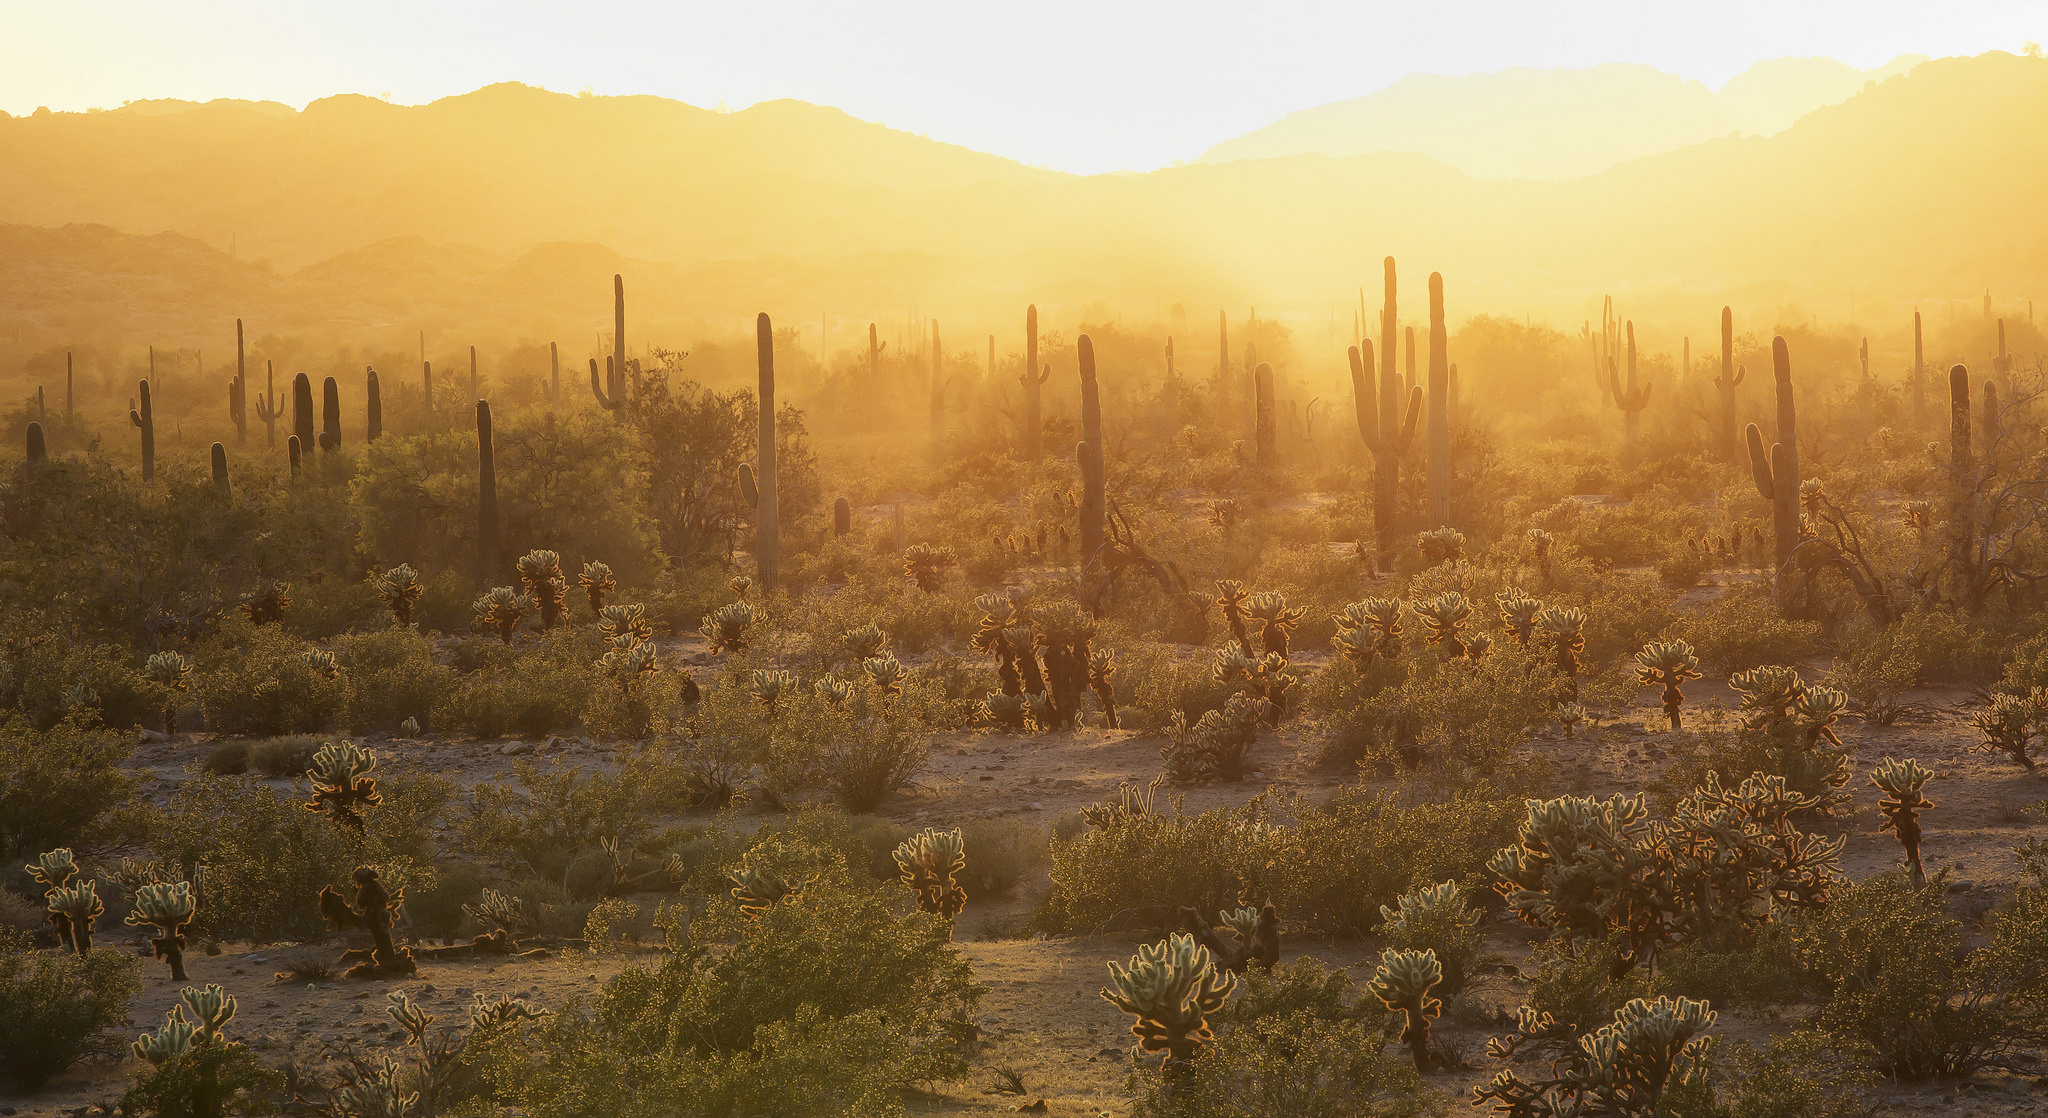 photo by Bob Wick, a photo of the desert at sunset